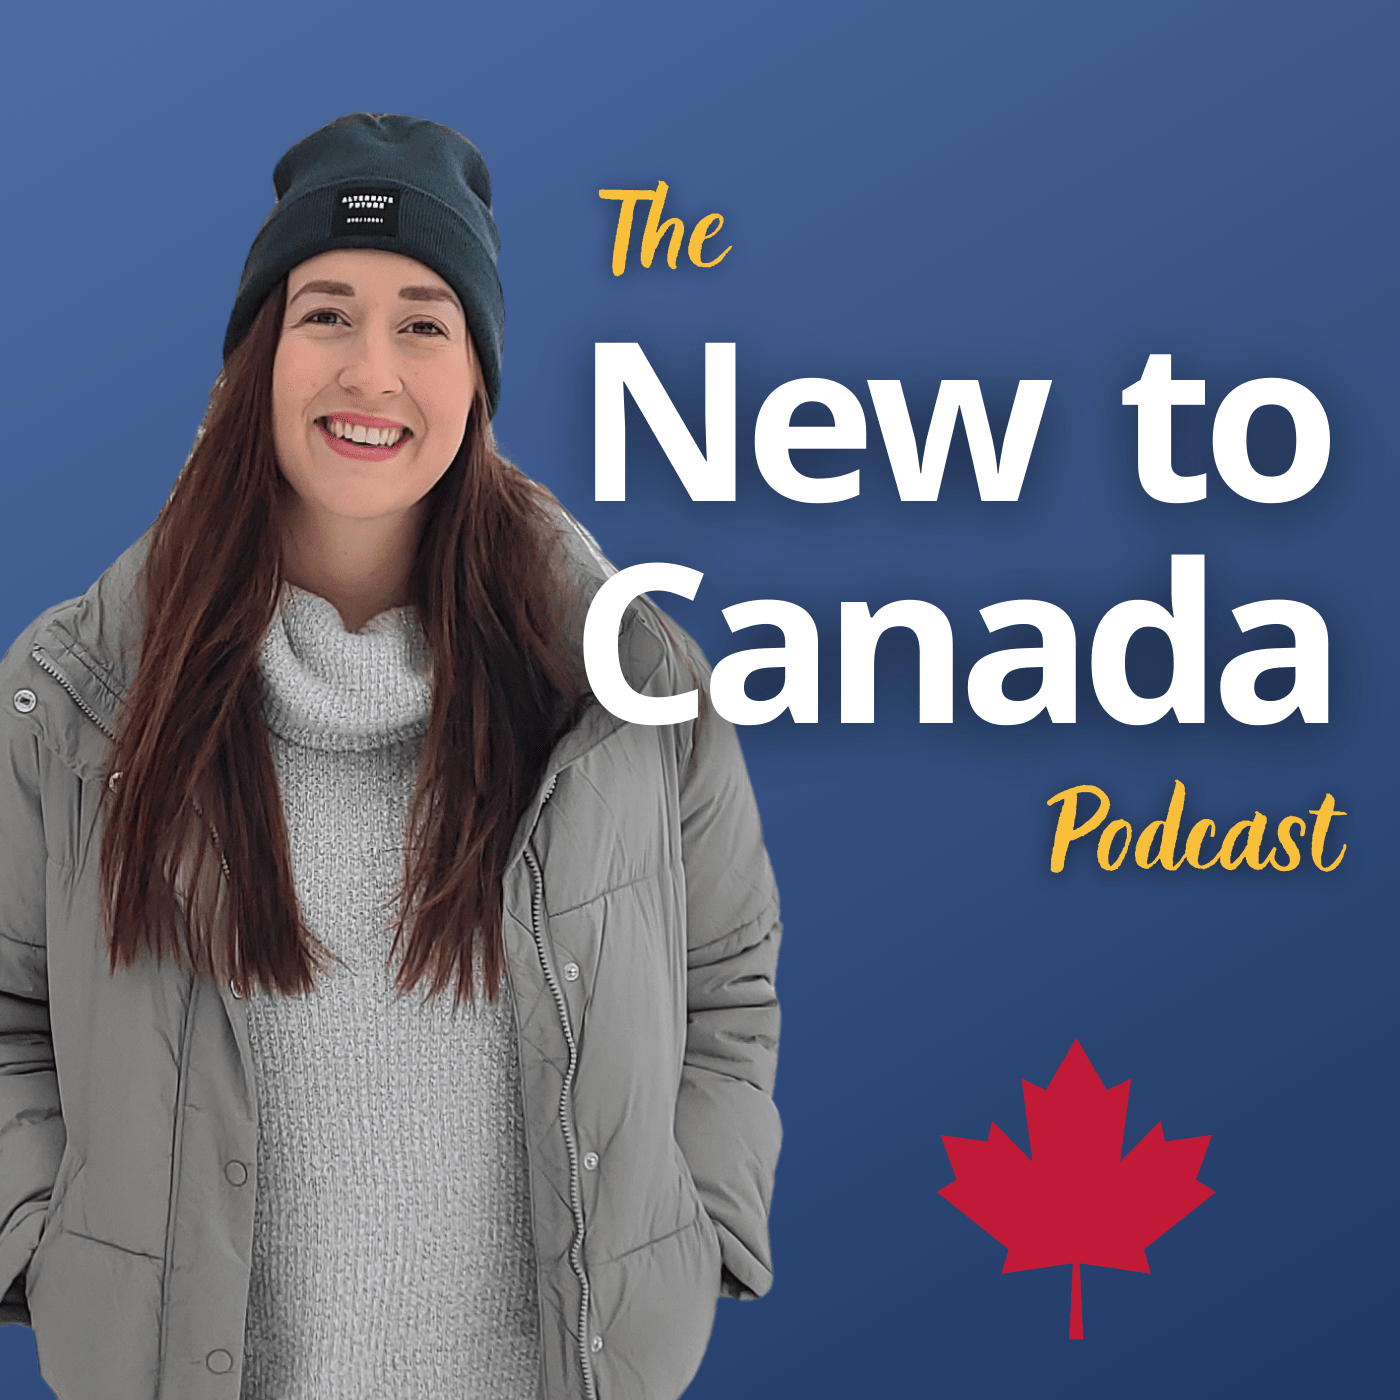 The New to Canada Podcast podcast show image